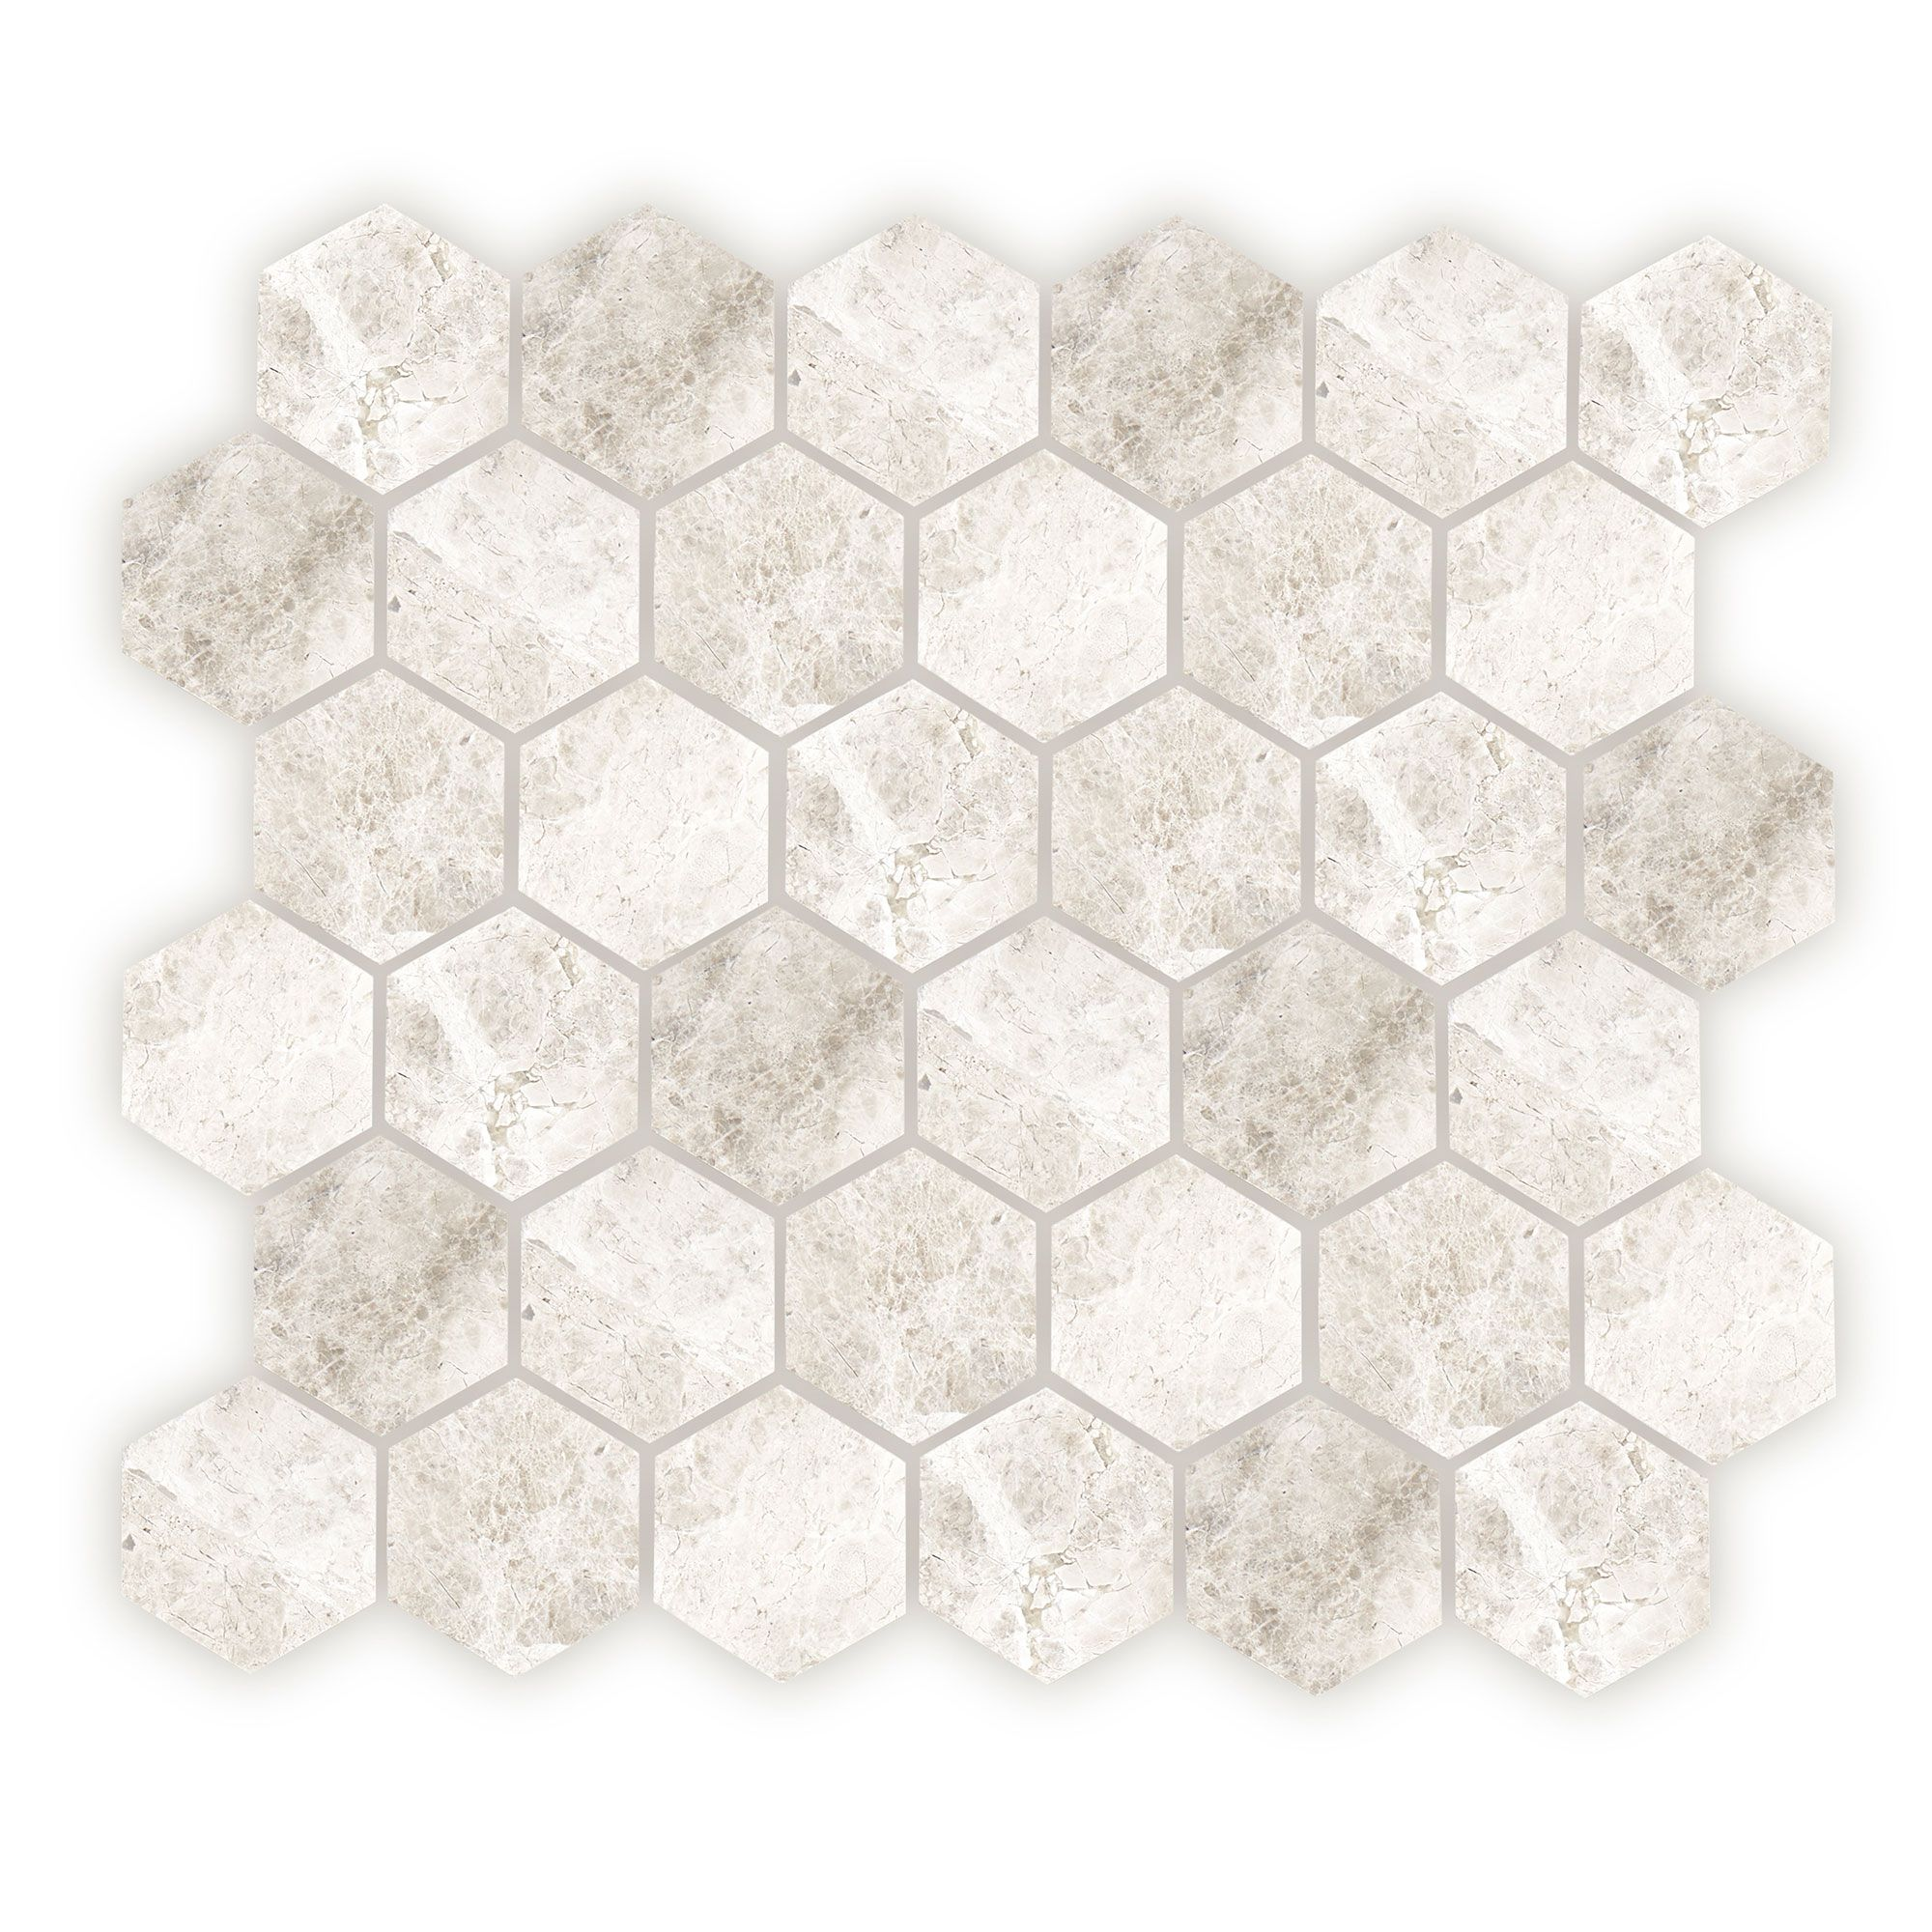 Westhampton Hexagon Mosaic, Honed